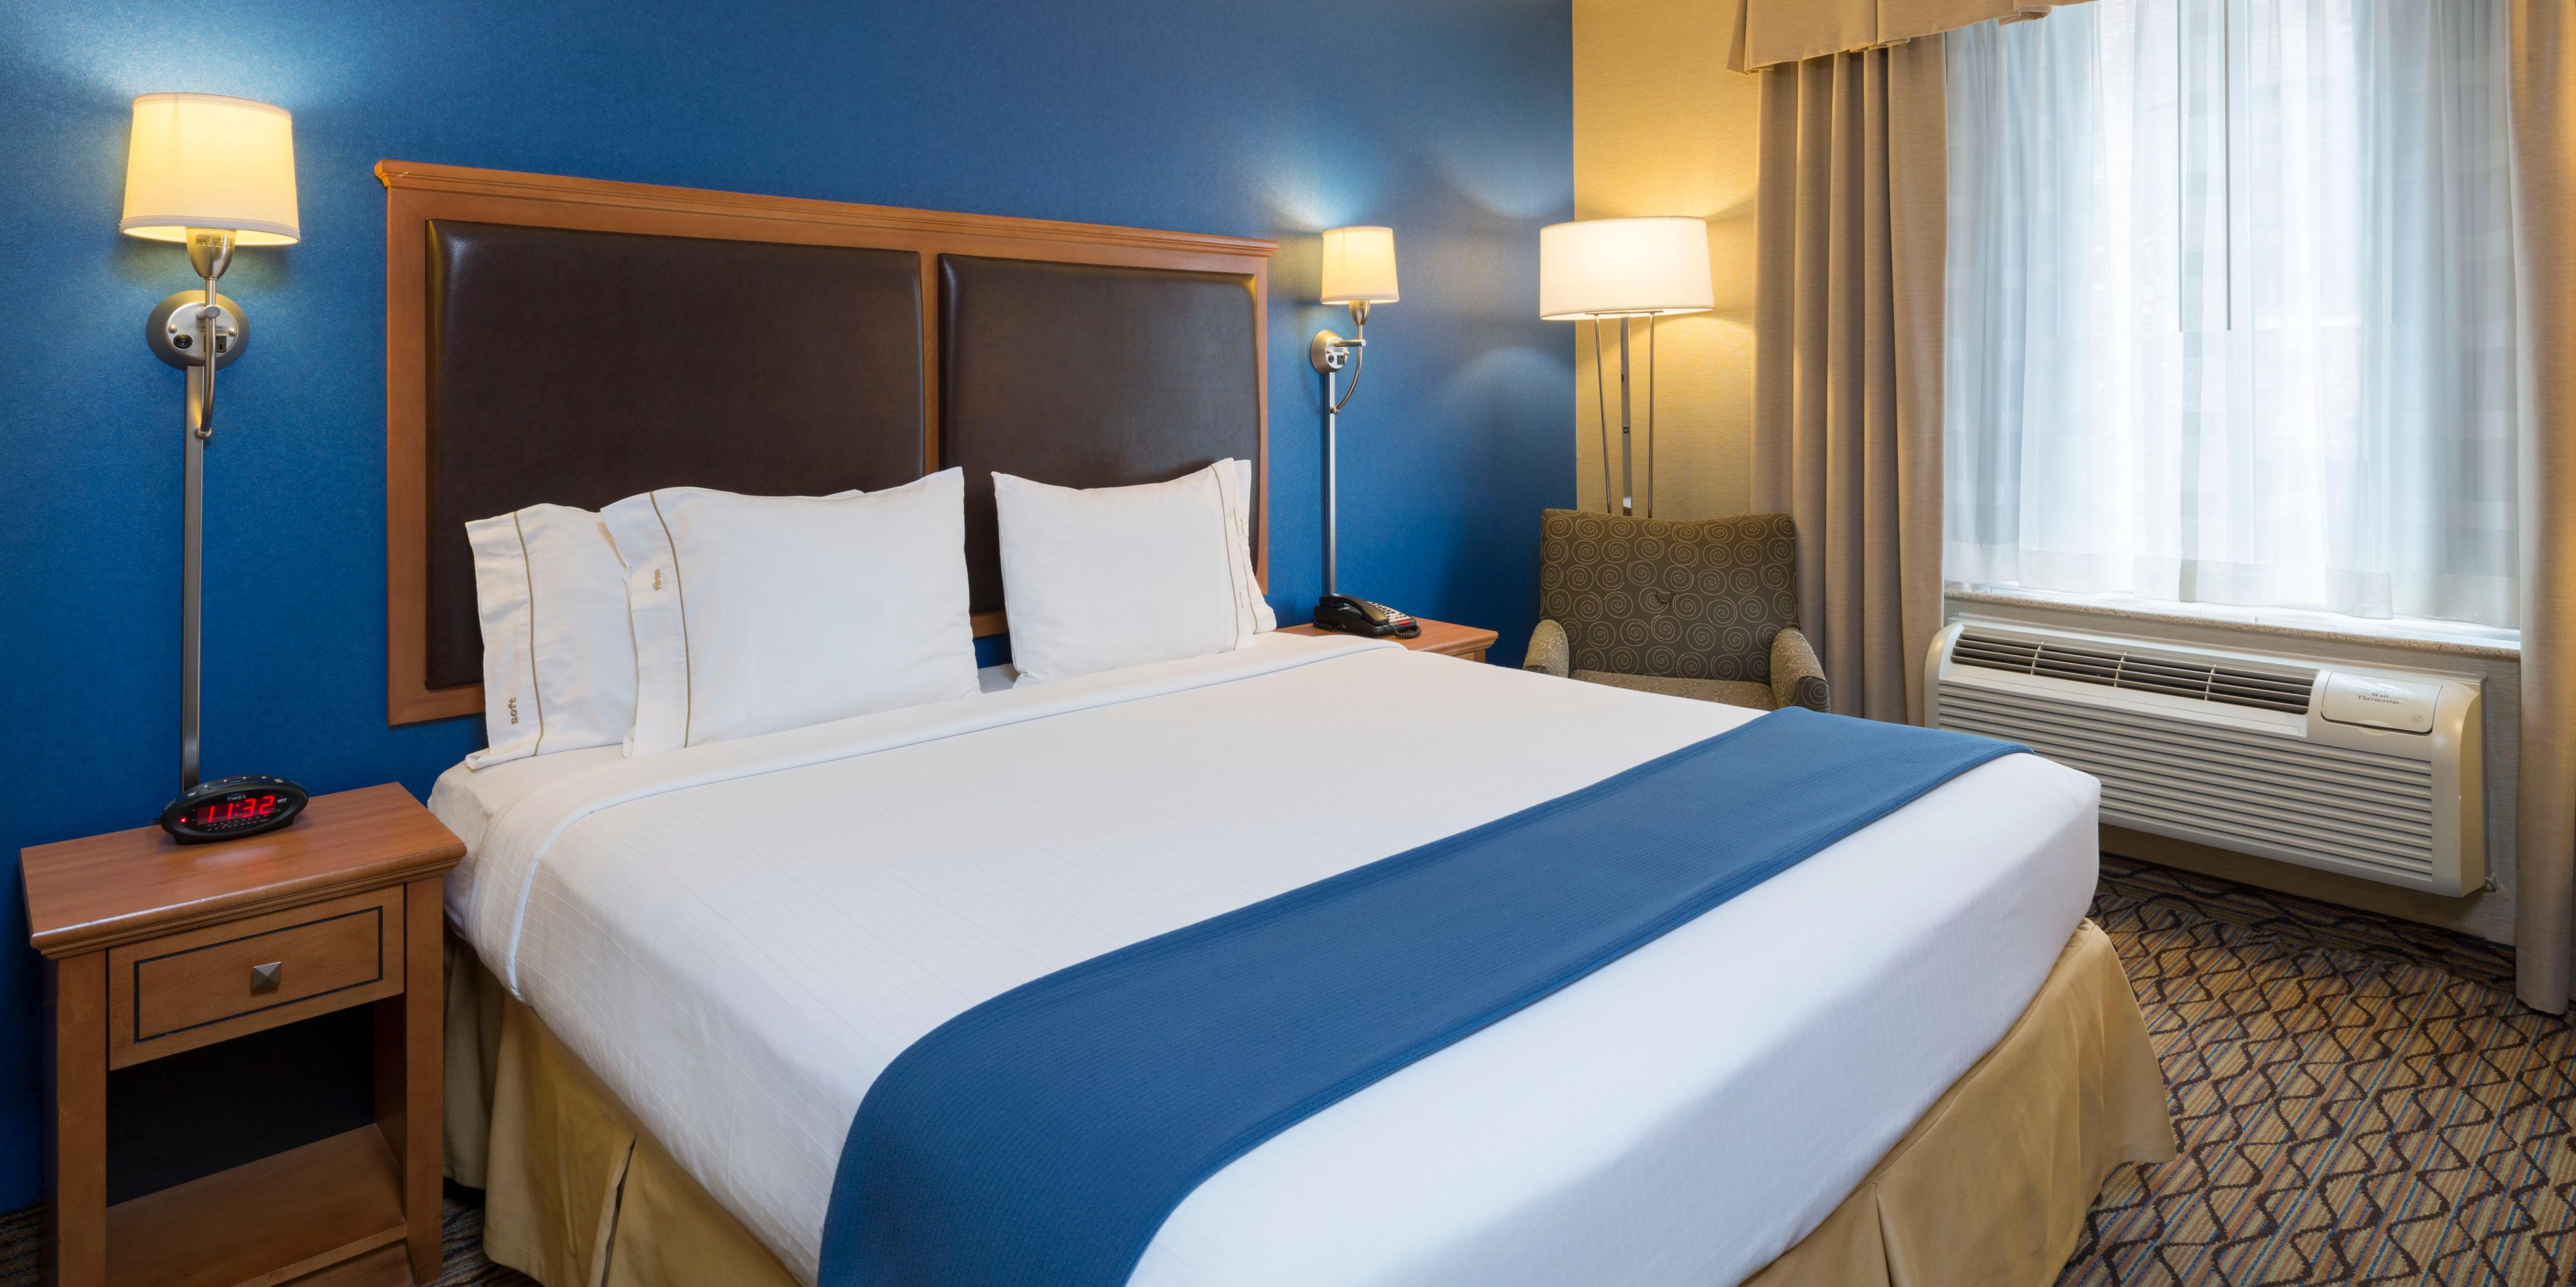 suites express central en us parking madison hoteldetail hotel garden and holidayinnexpress ihg inn near hotels square msnrr by holiday